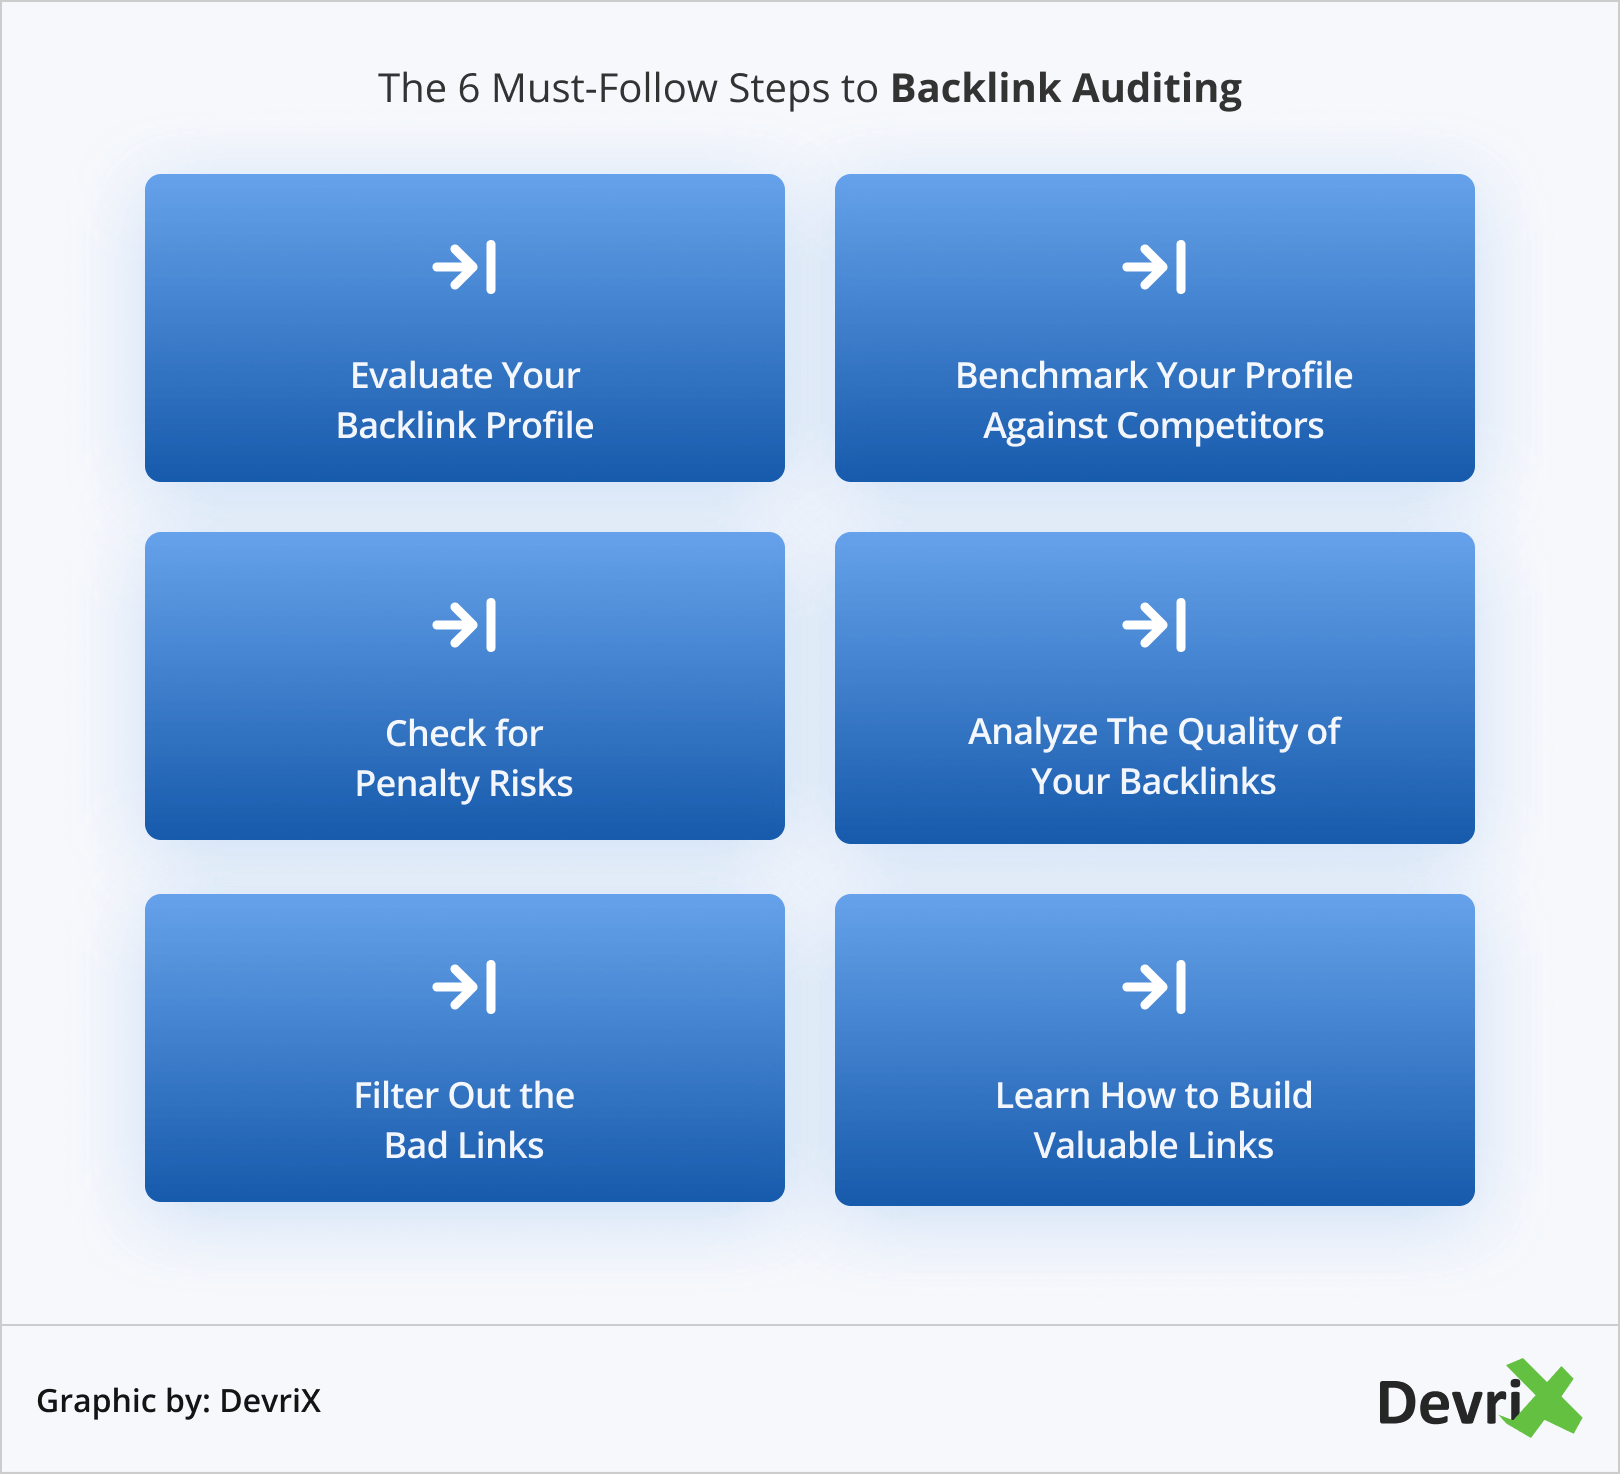 The 6 Must-Follow Steps to Backlink Auditing